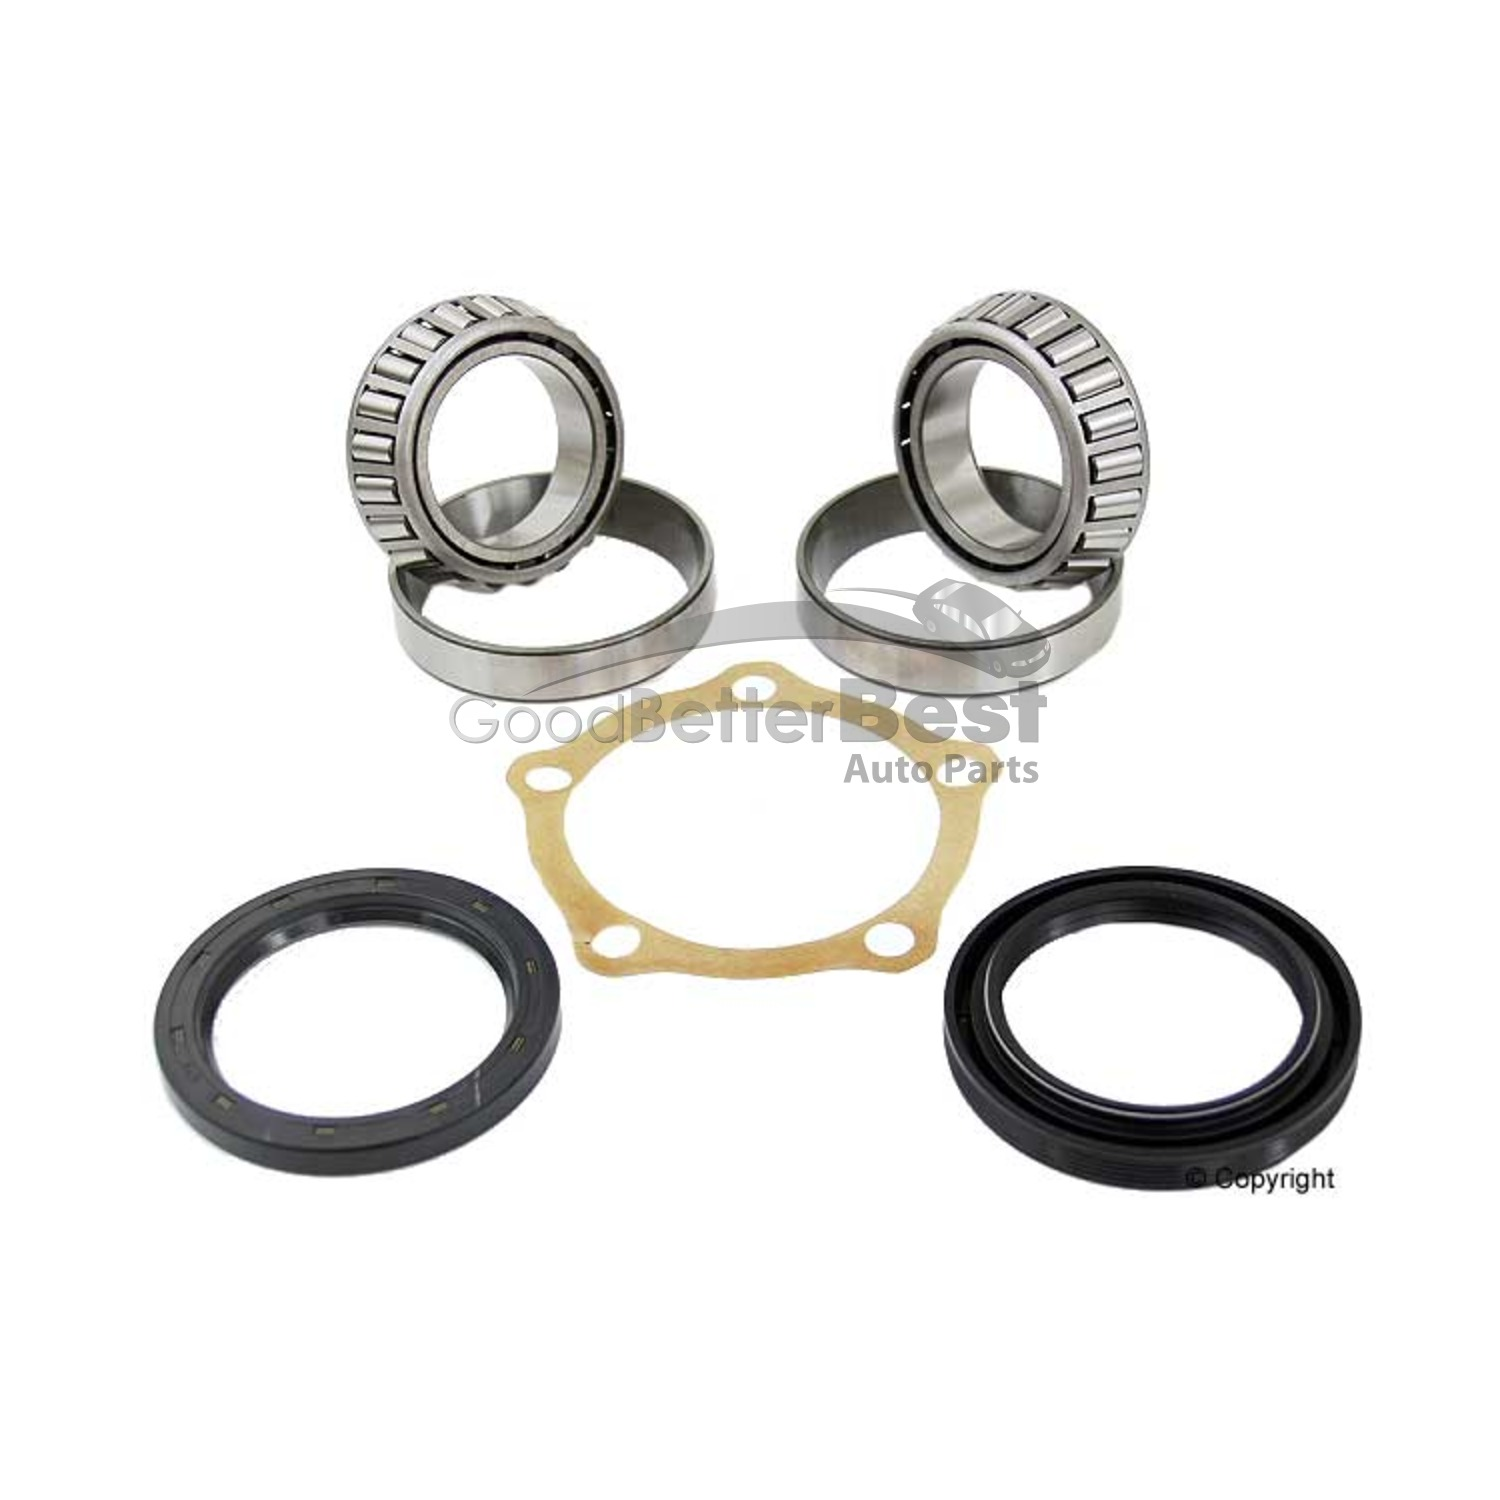 New Skf Wheel Bearing Kit Front Wkh For Land Rover